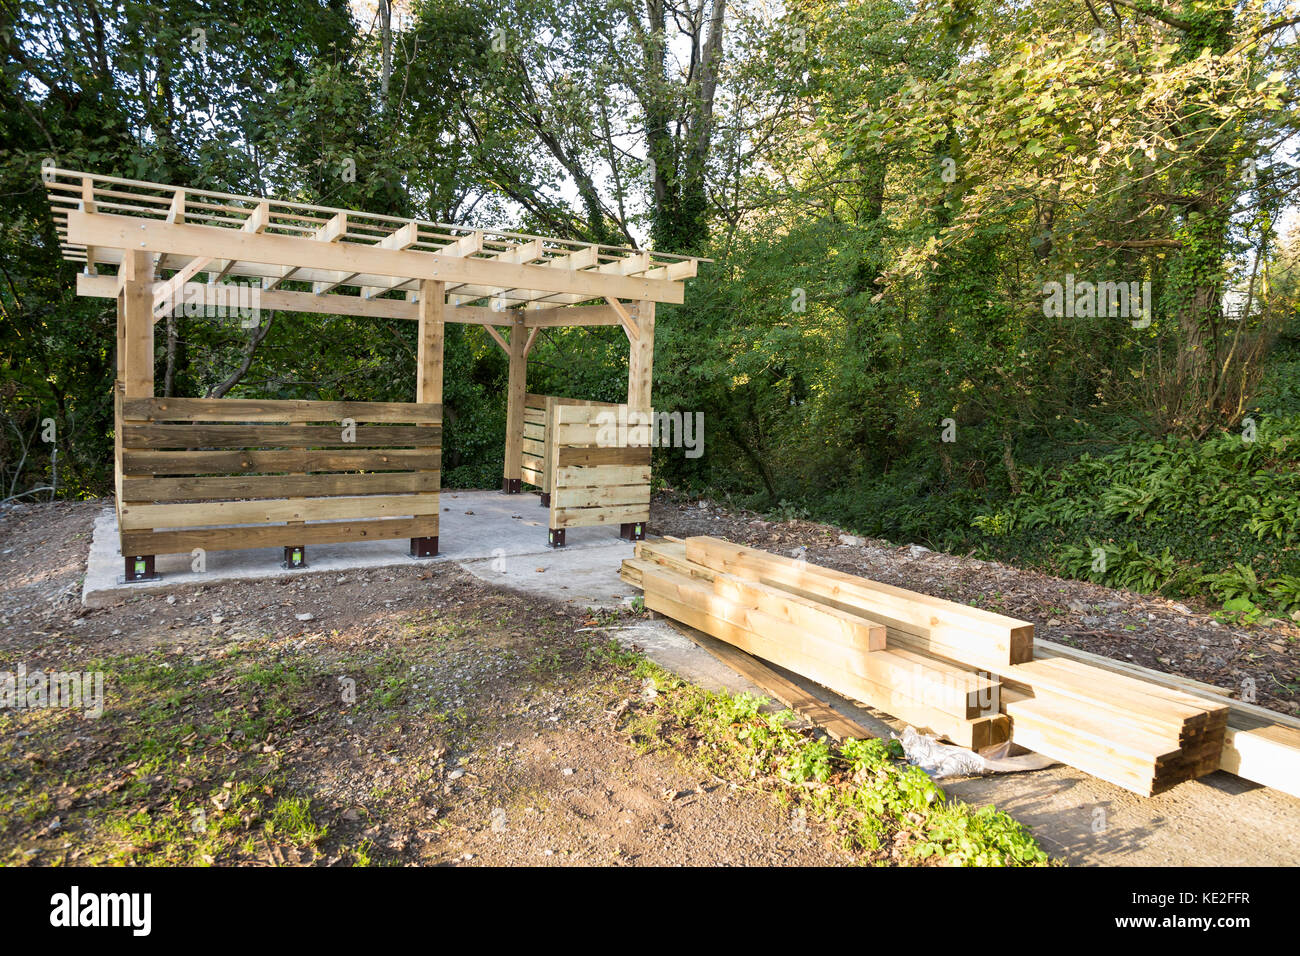 timber frame building detail of construction Stock Photo: 163554603